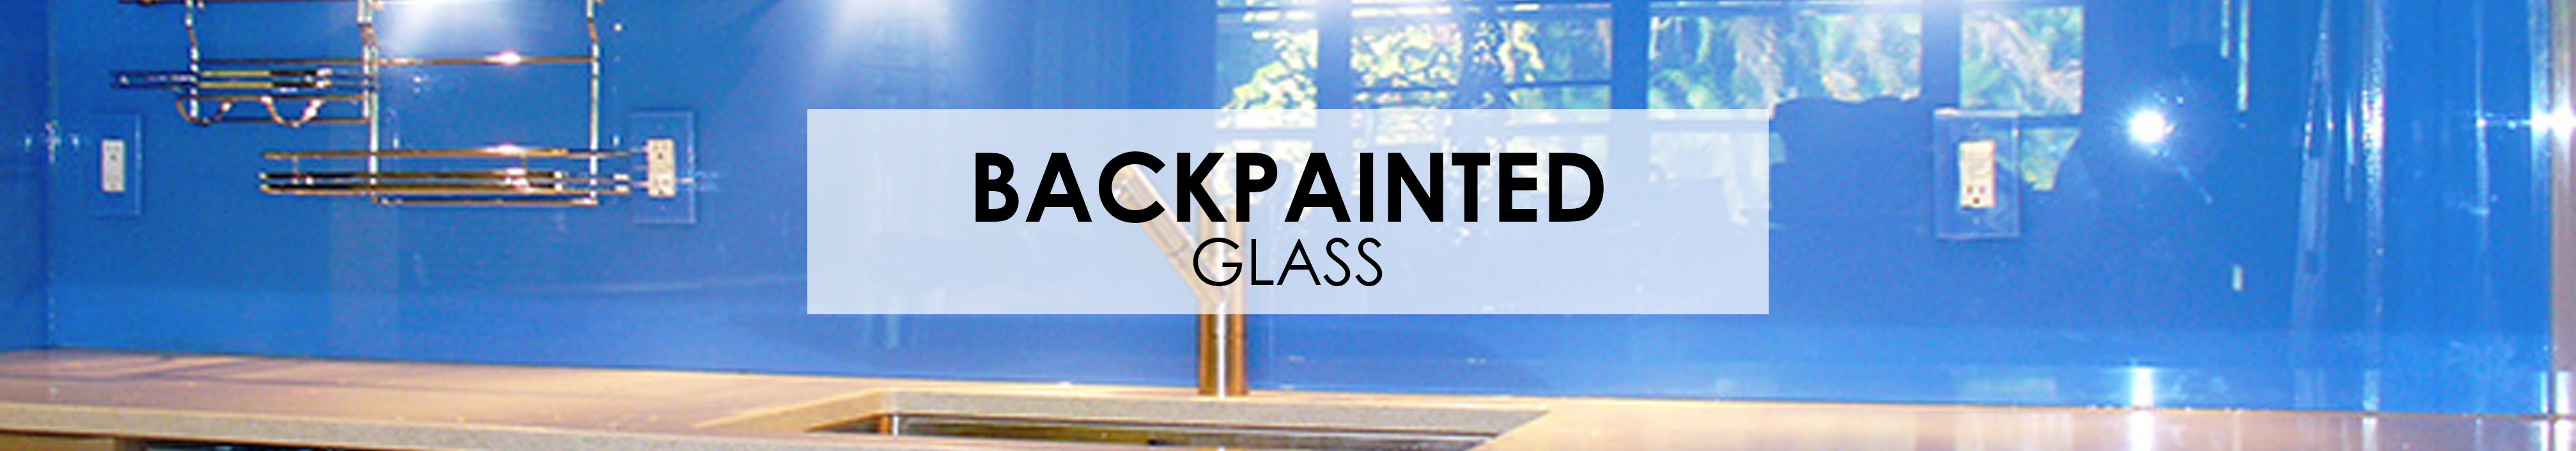 Architectural Decorative Glass Backpainted